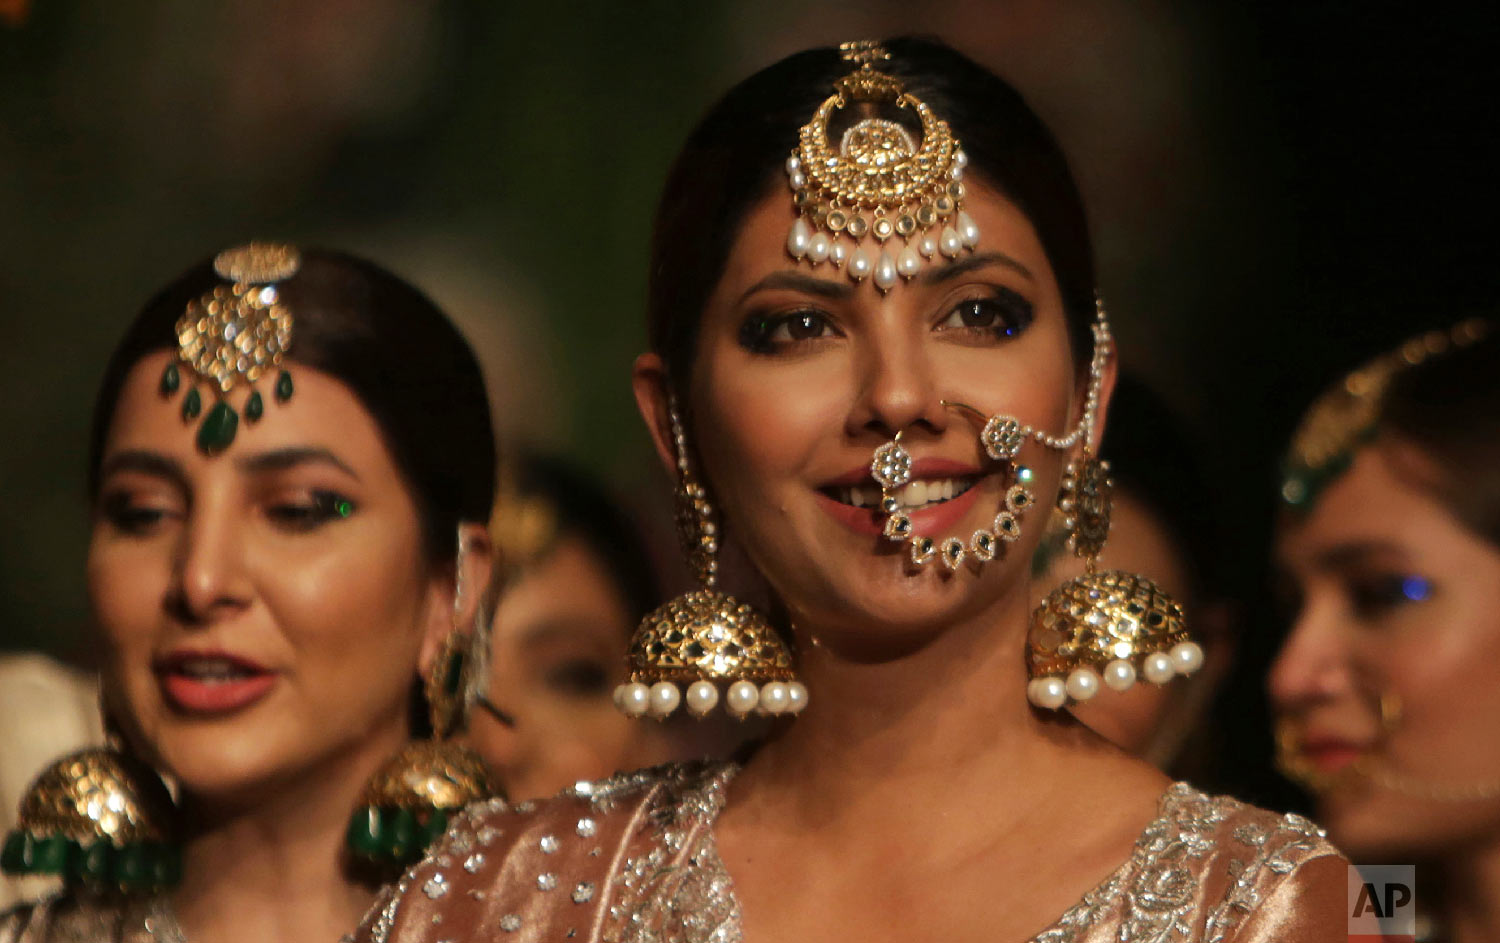 Models present traditional jewelry designed by Nida Azwer during a fashion show by the Loreal Paris Pakistan Fashion Design Council in Lahore, Pakistan, Sept. 5, 2018. (AP Photo/K.M. Chaudary)